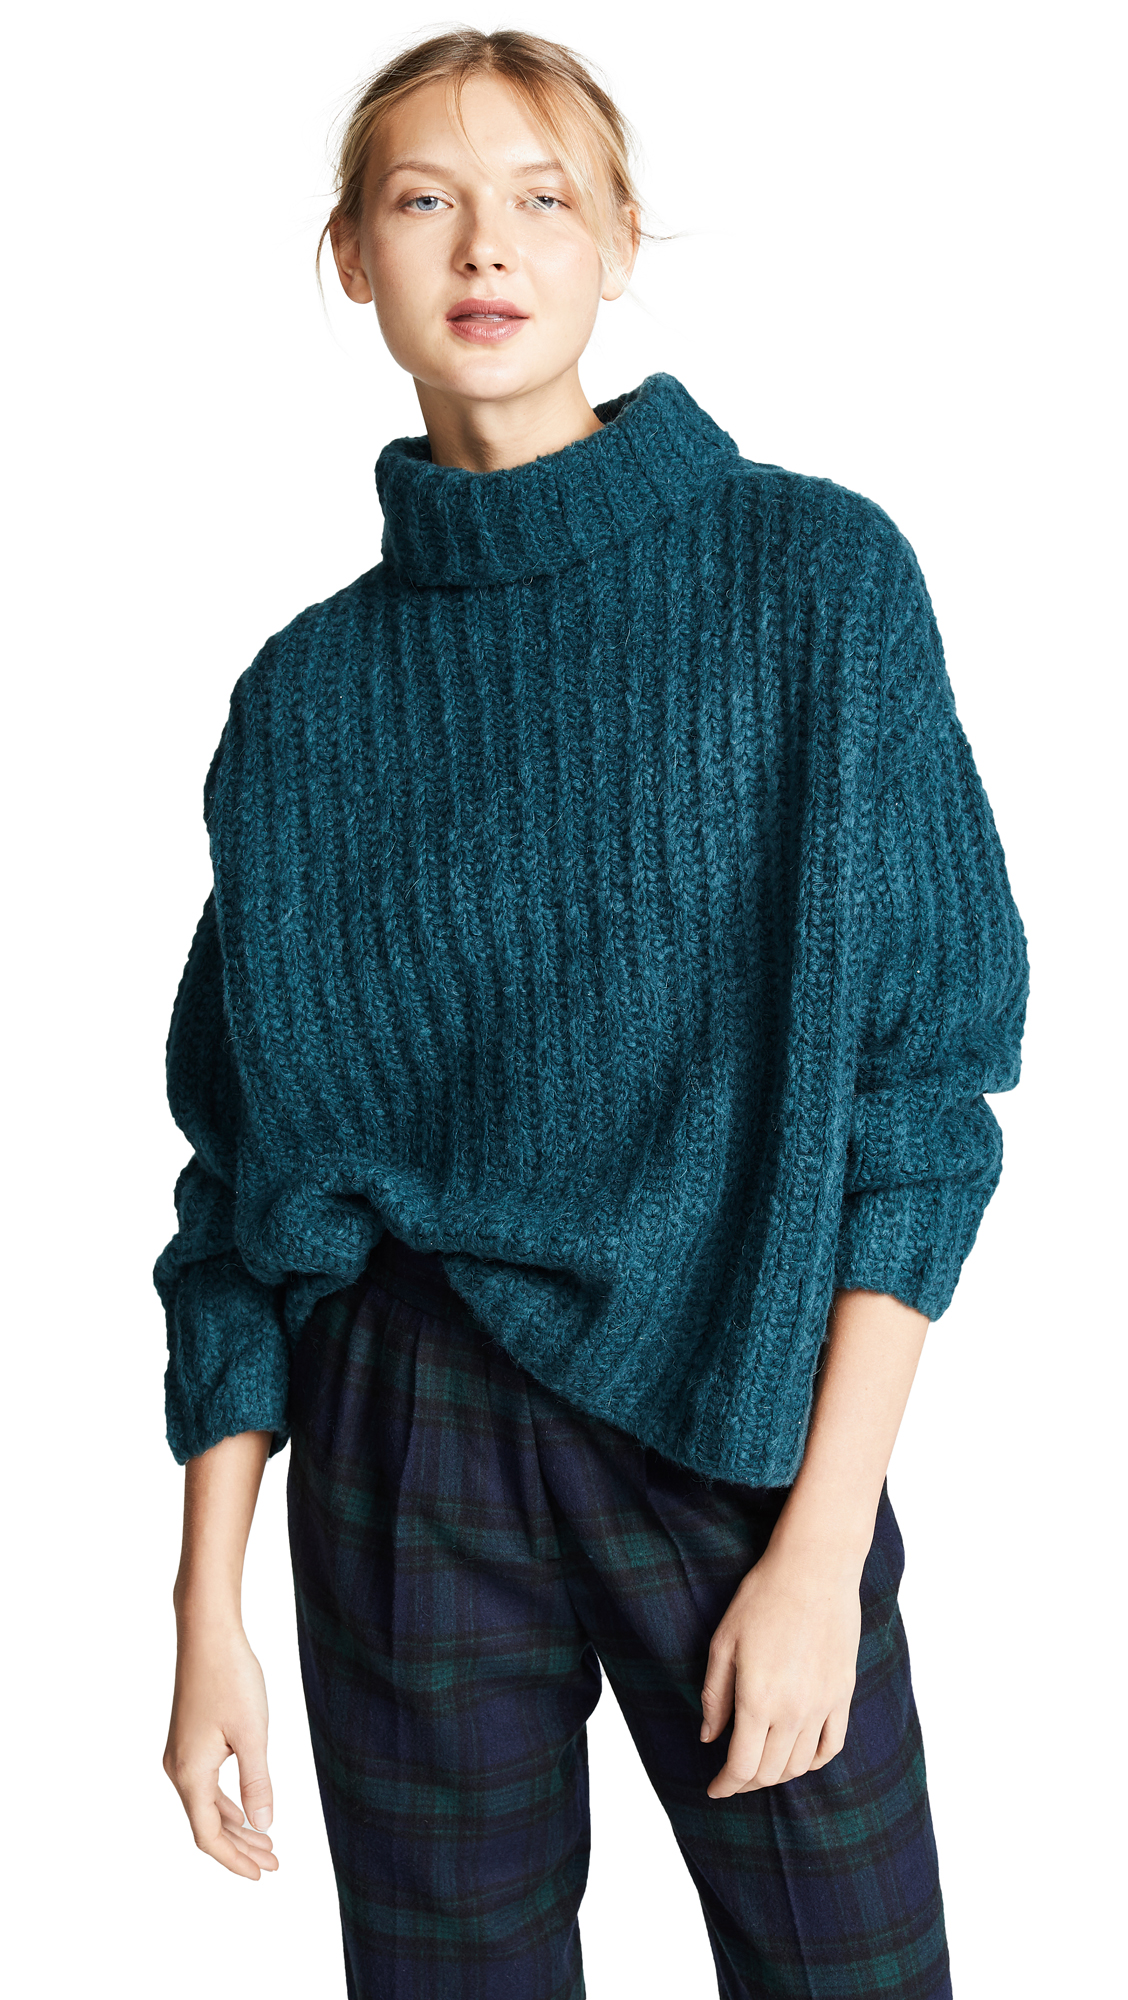 Free People Fluffy Fox Sweater - Turquoise